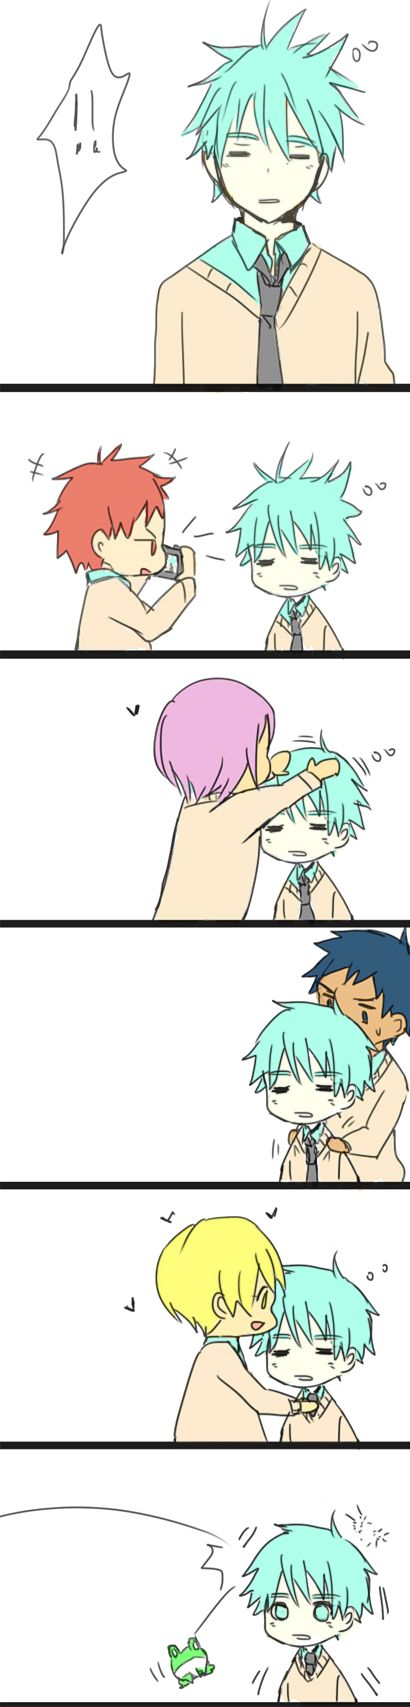 """Aww... I love how they all care for Kuroko, it's cute... Even Tsundere Midorima's willing to """"help!"""" XD"""